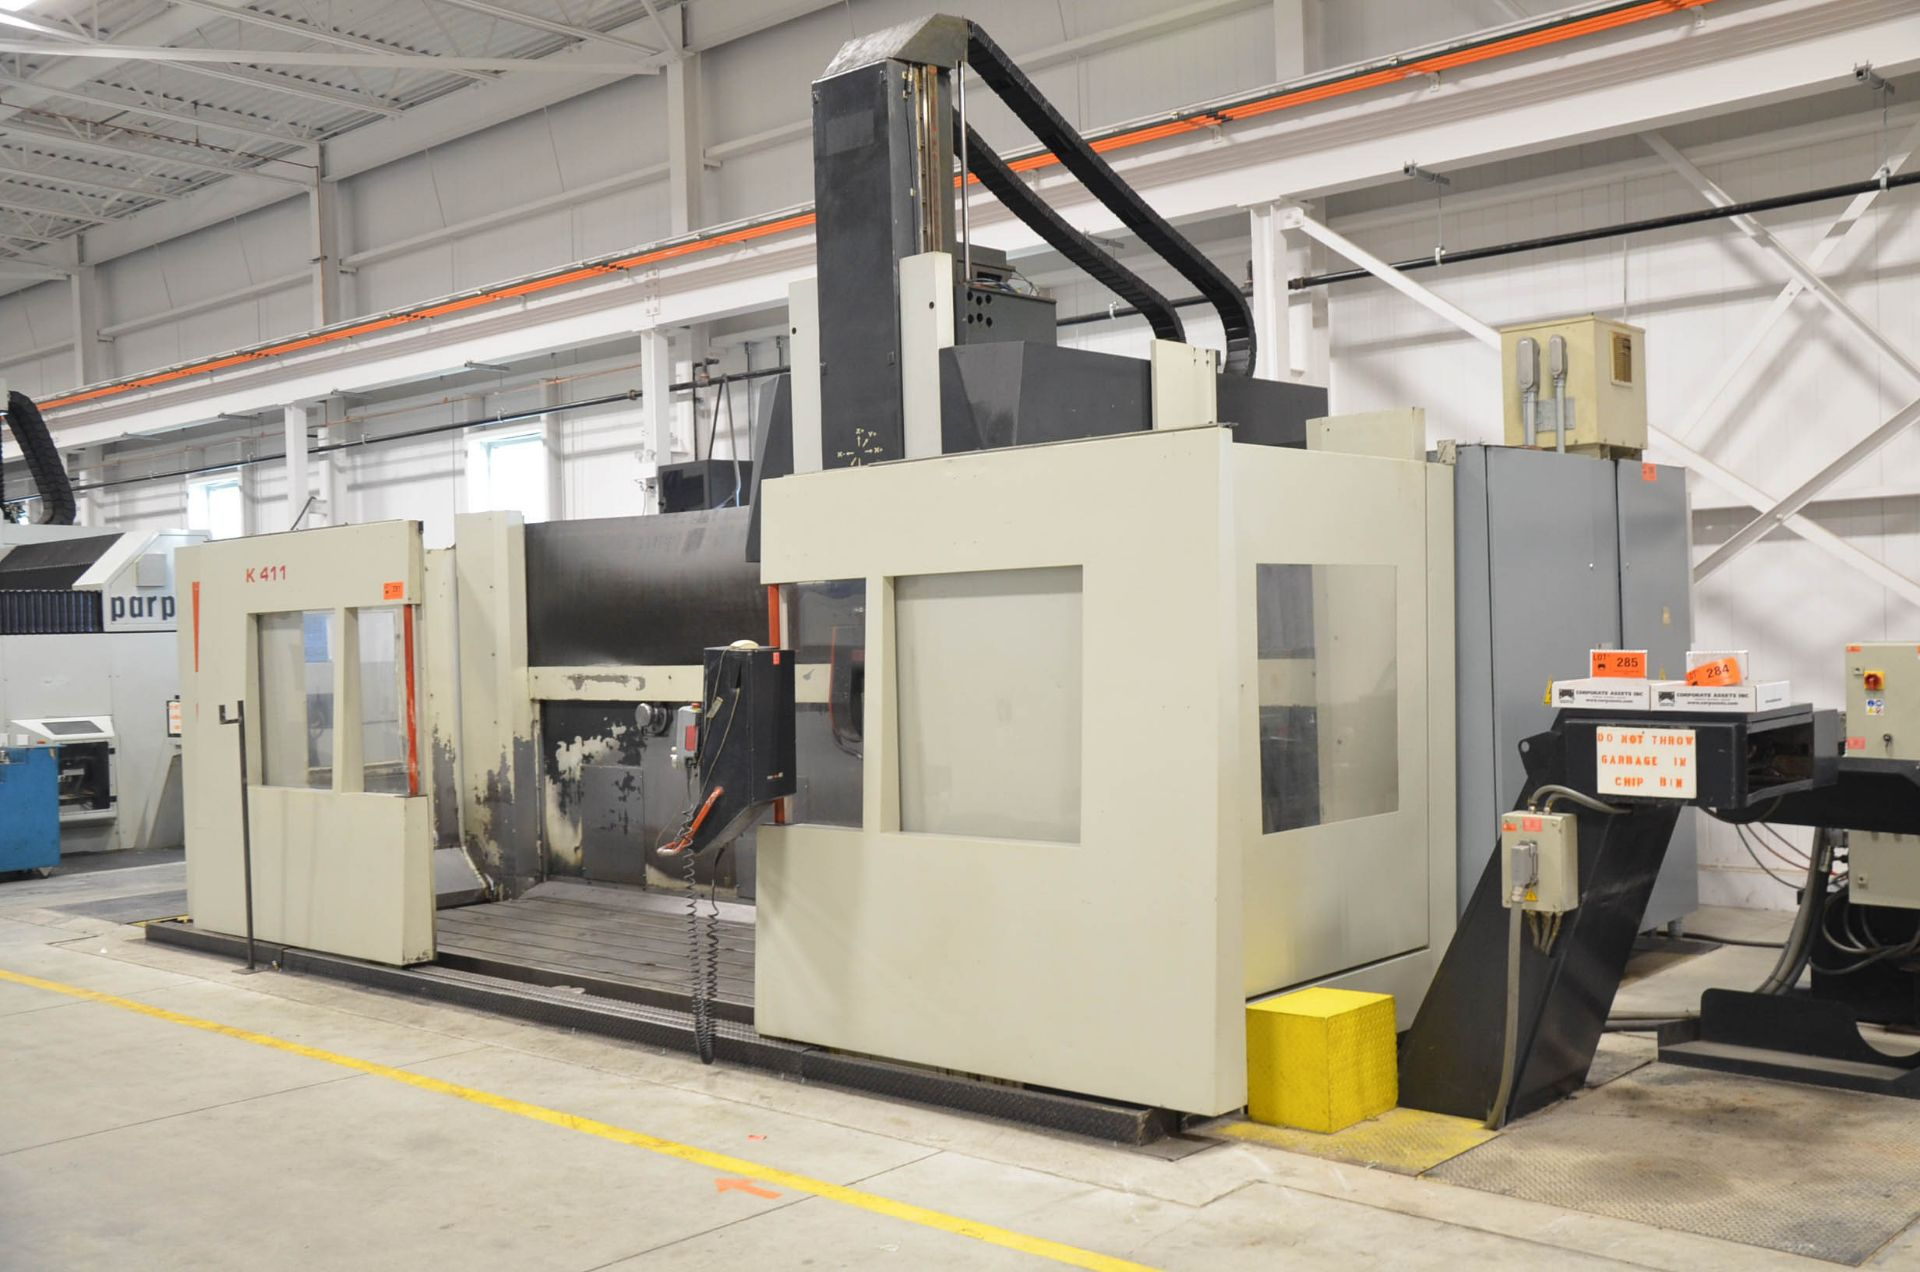 """FIDIA (2002) K 411 5-AXIS CNC VERTICAL MACHINING CENTER WITH FIDIA C20 CNC CONTROL, 59"""" X 197"""" - Image 4 of 11"""